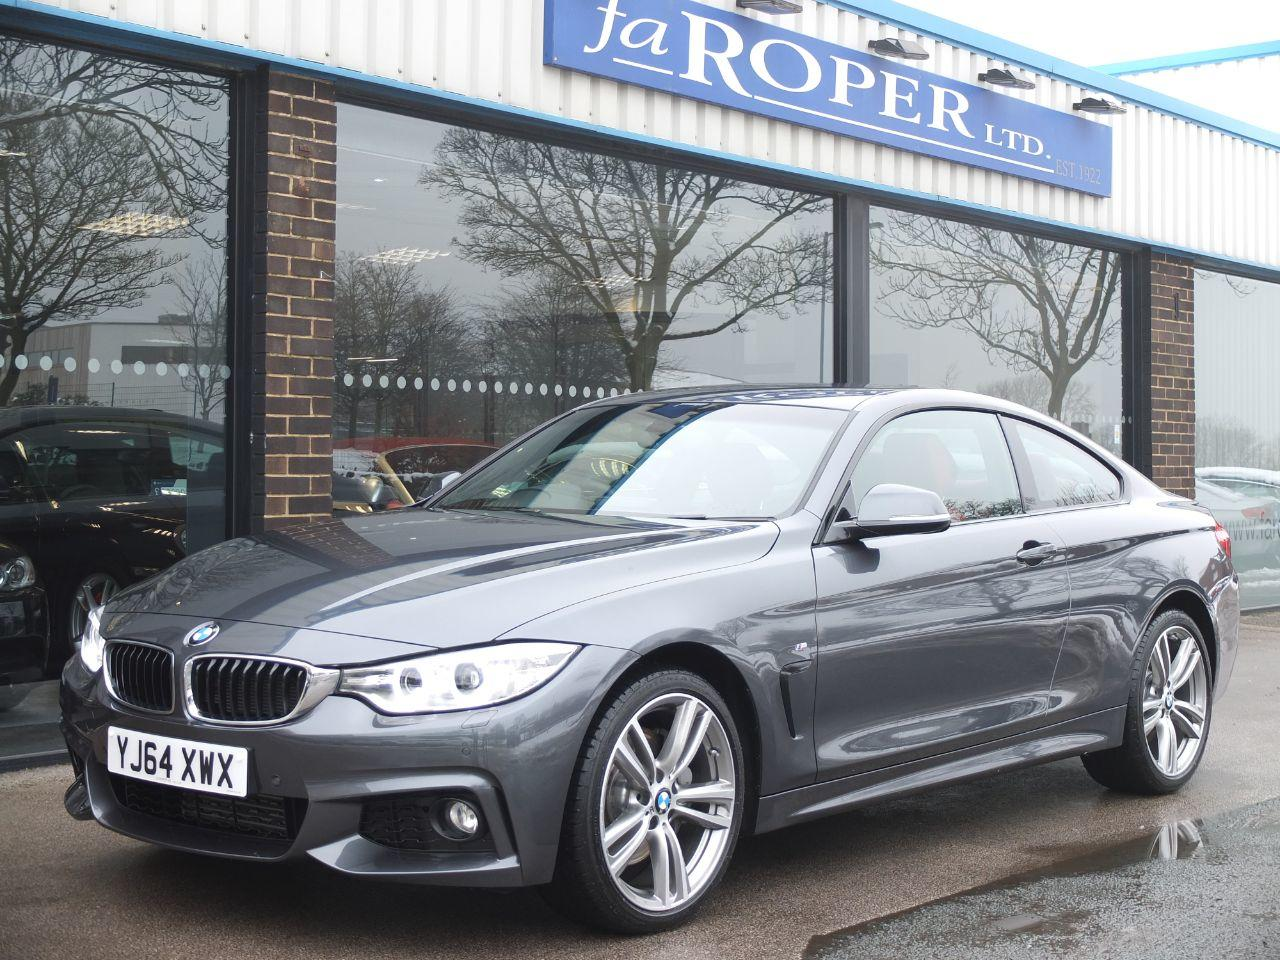 BMW 4 Series 3.0 435d xDrive M Sport Auto +++Spec Coupe Diesel Mineral Grey MetallicBMW 4 Series 3.0 435d xDrive M Sport Auto +++Spec Coupe Diesel Mineral Grey Metallic at fa Roper Ltd Bradford